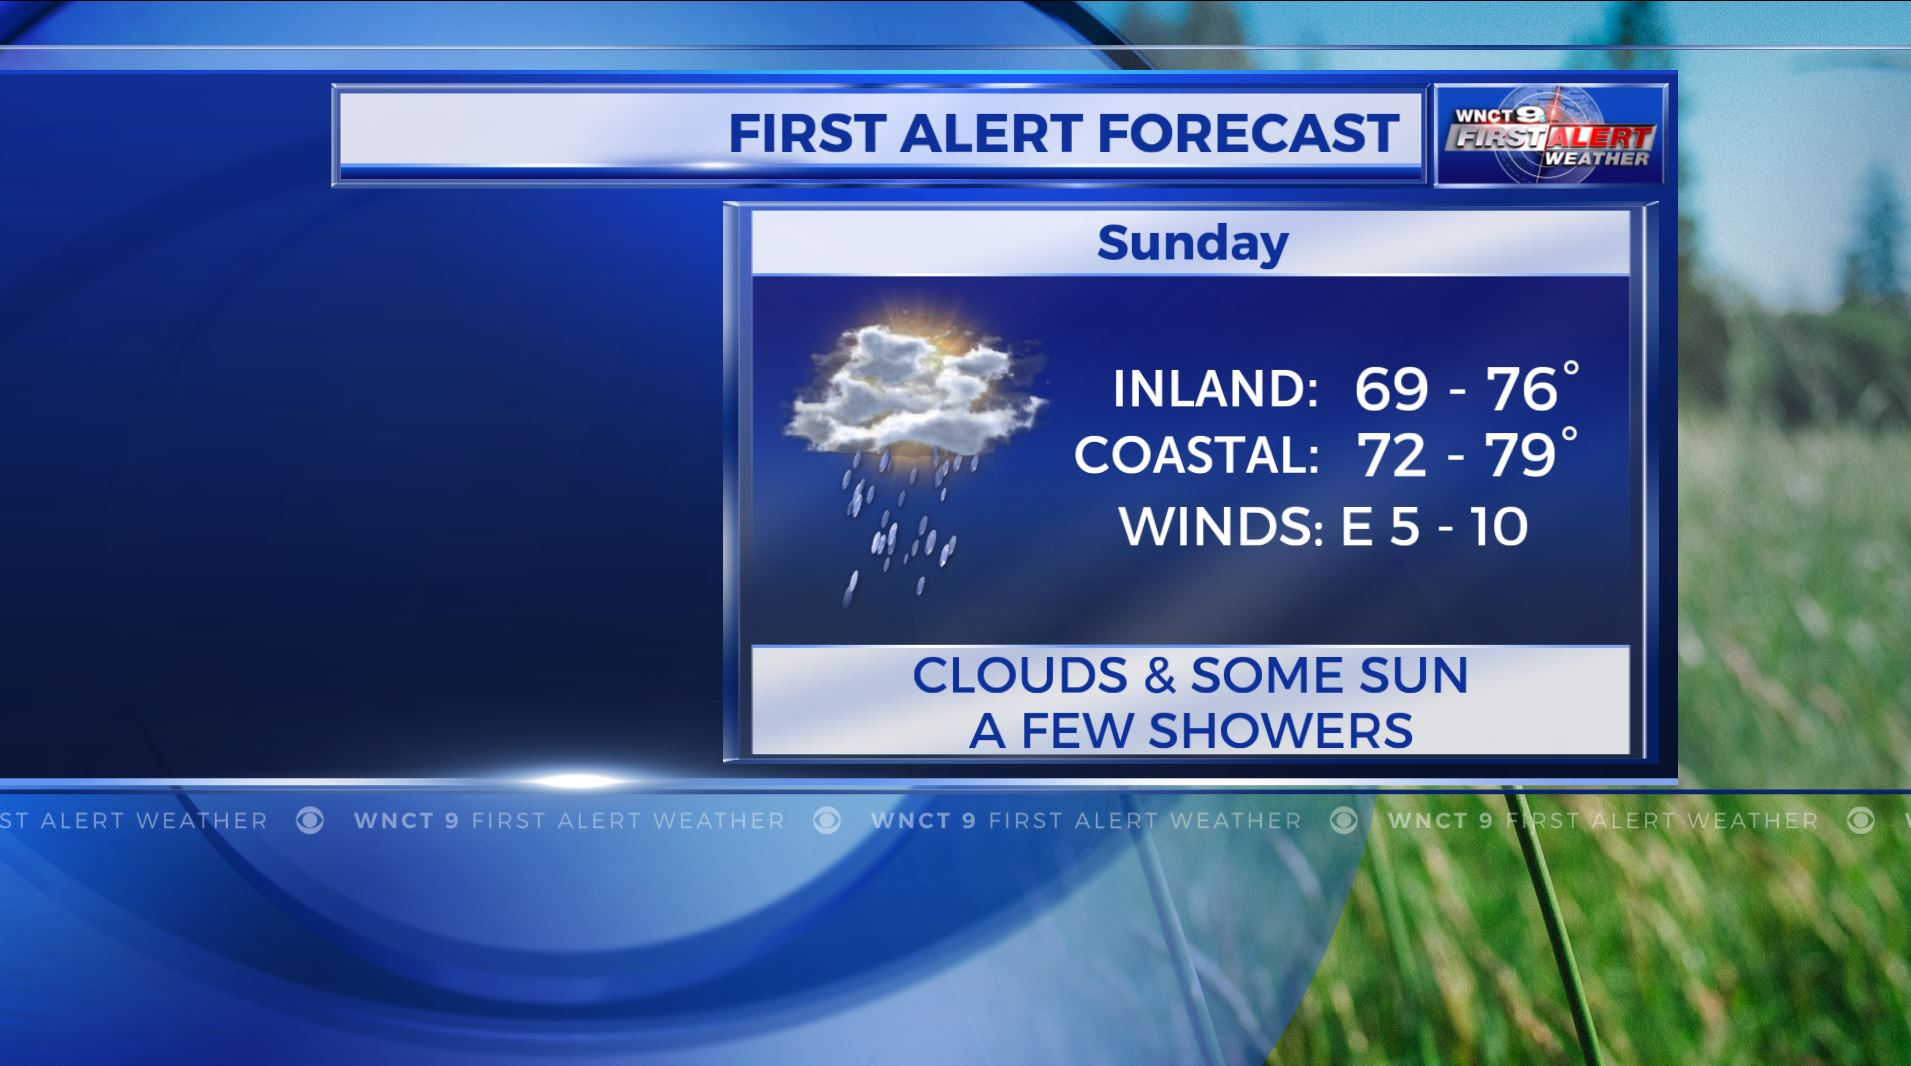 Sunday afternoon clouds to bring 50 percent chance of thunderstorms